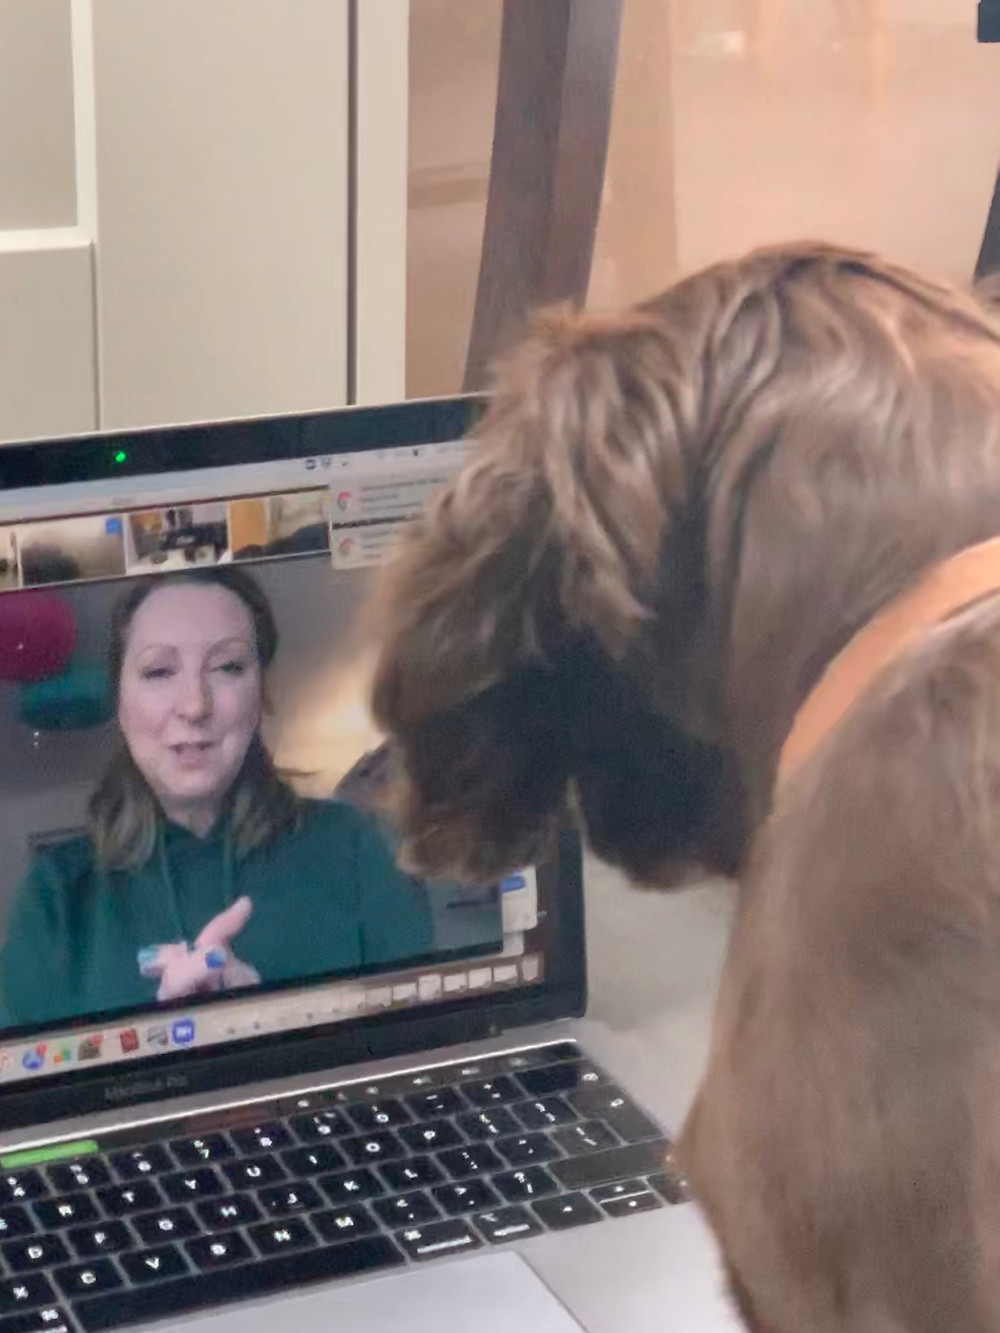 Puppy studying dog trainer on laptop